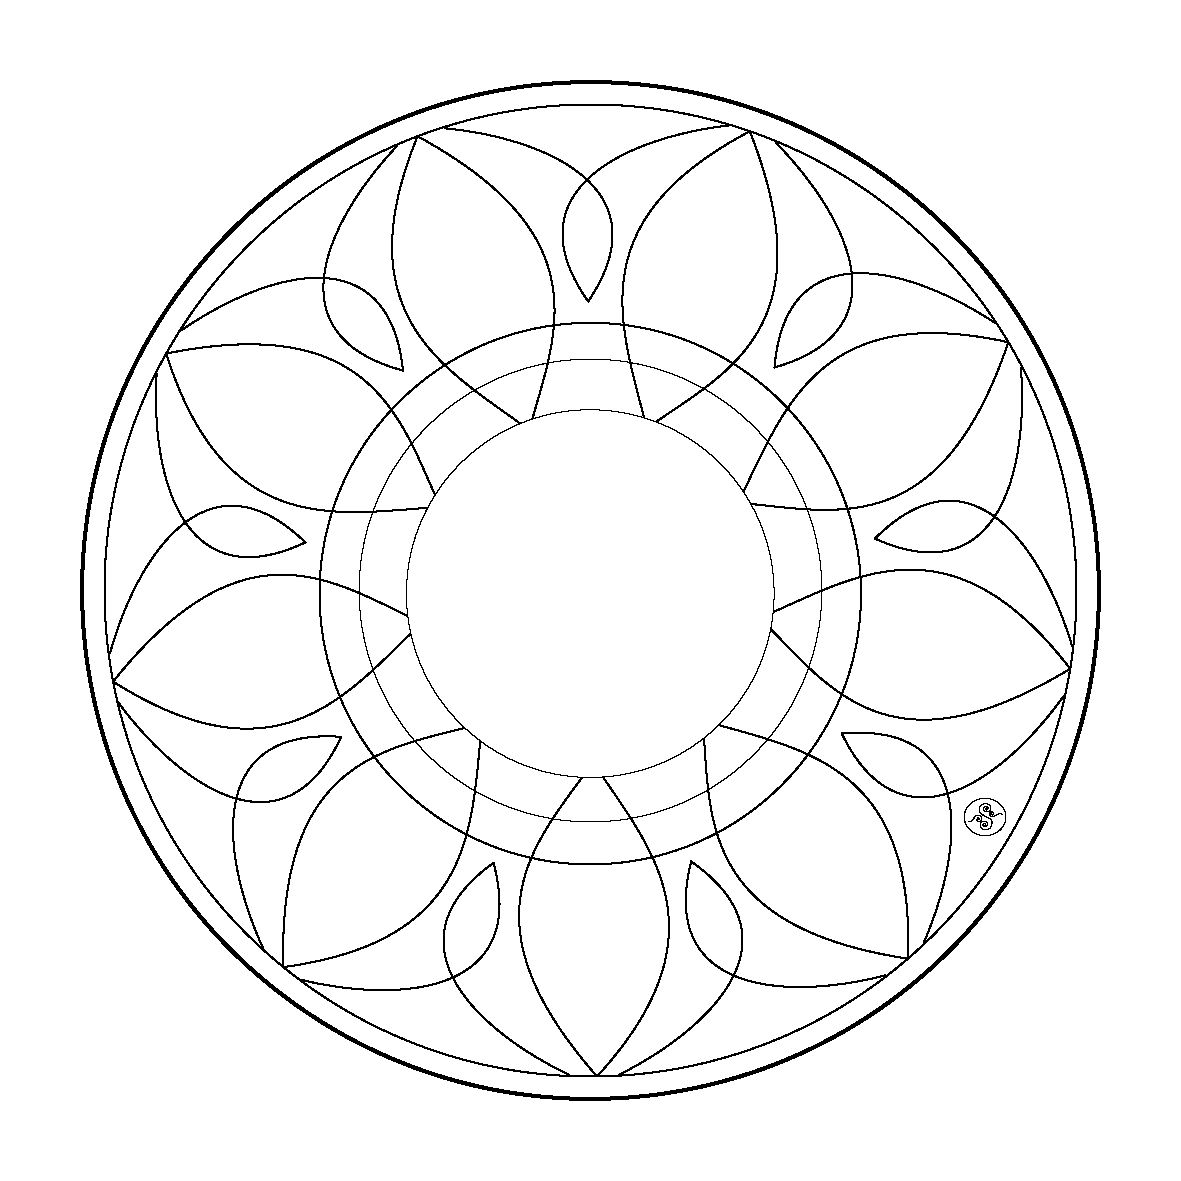 Mandala Coloring pages Mandala coloring pages, Simple